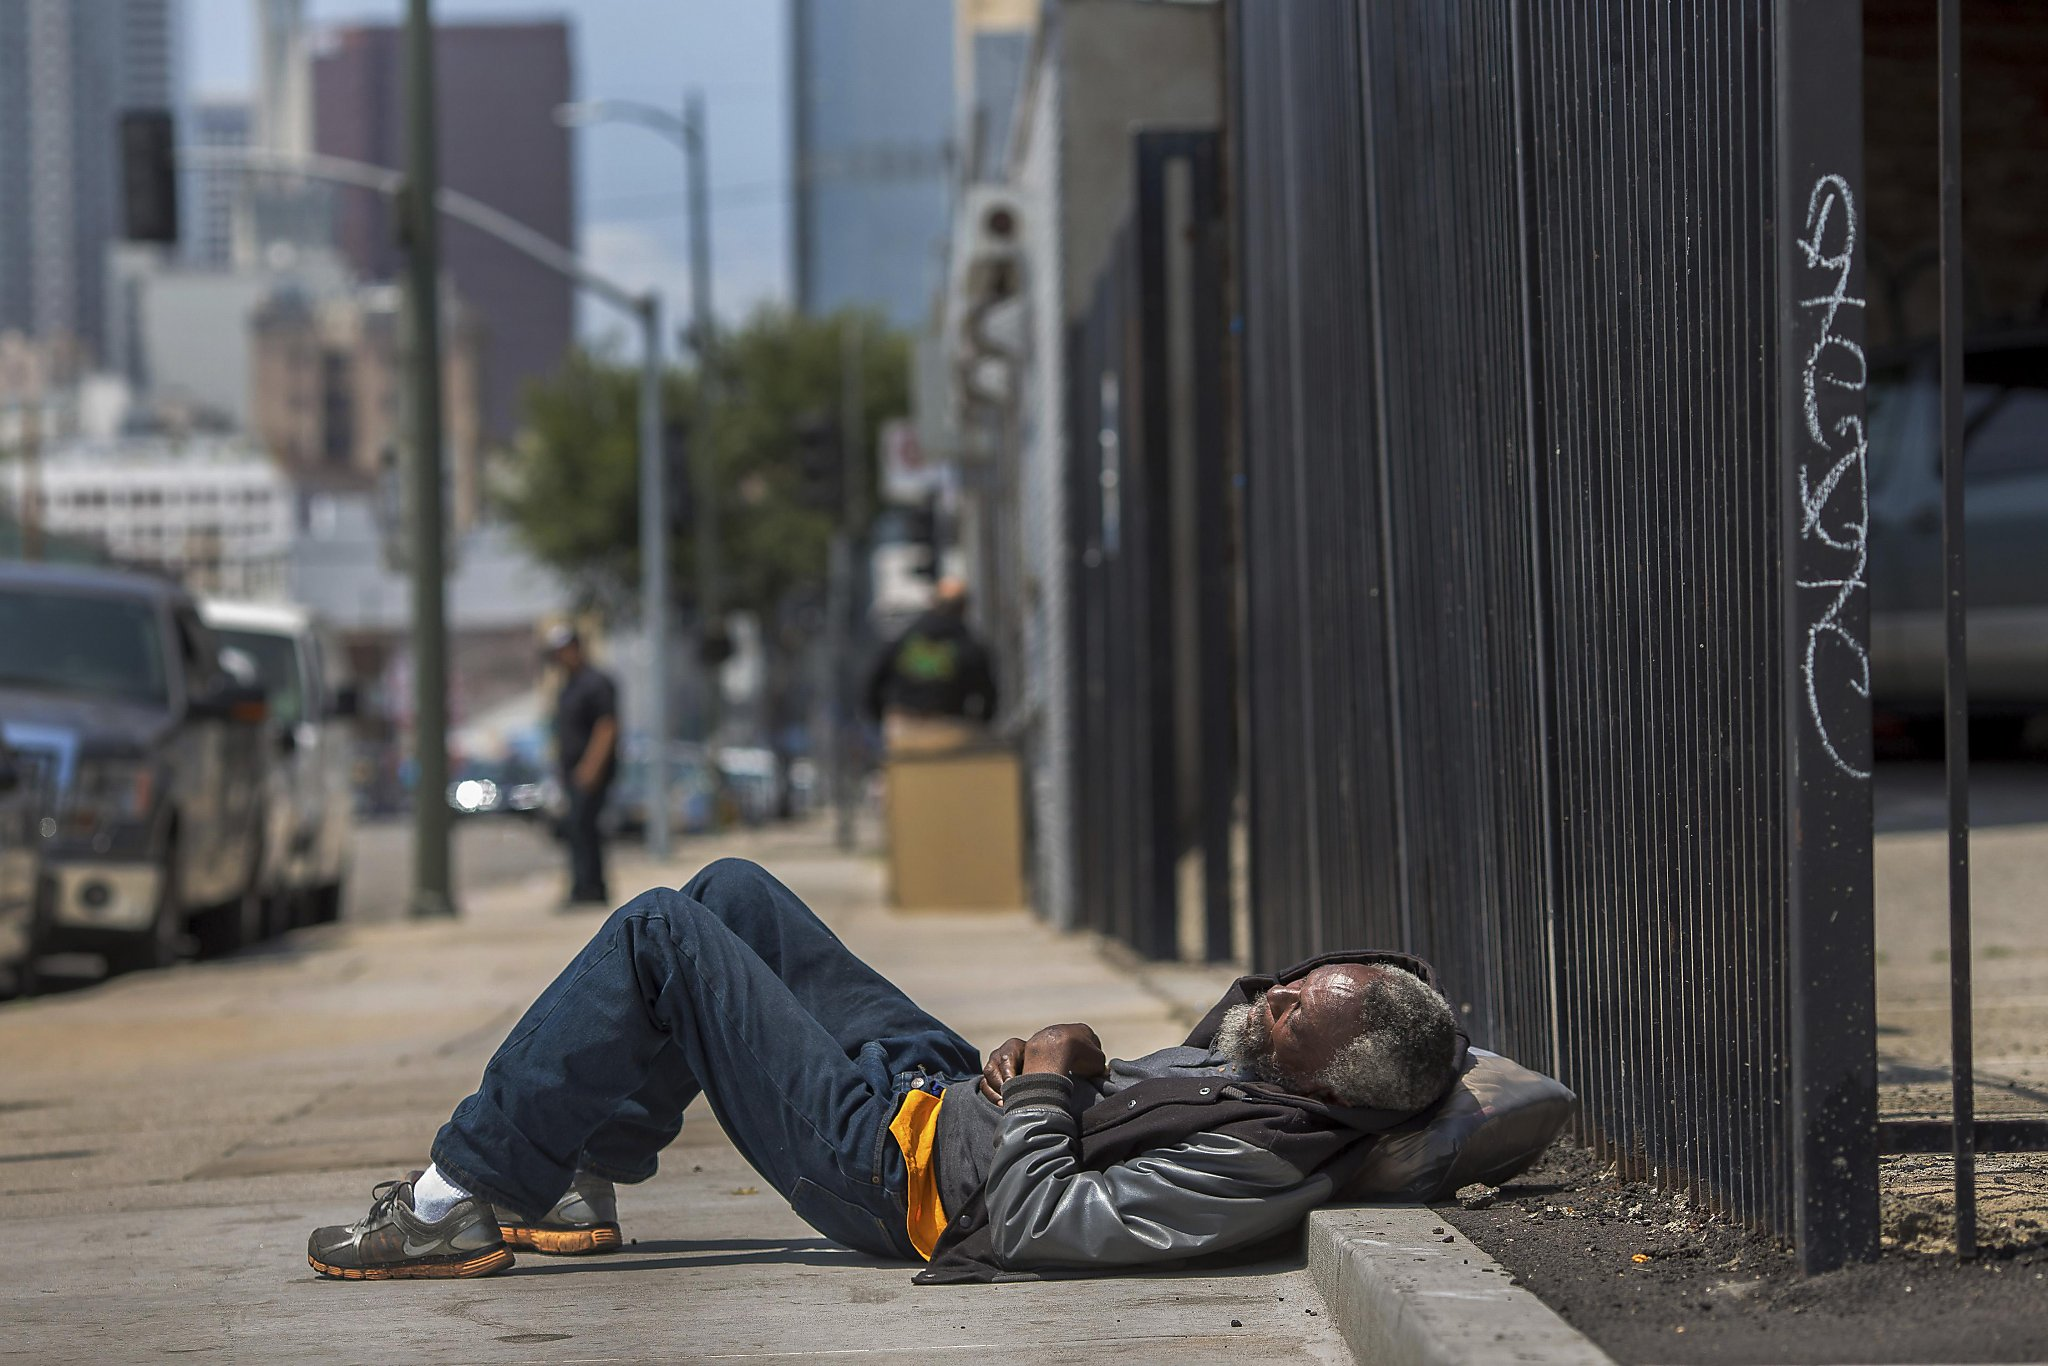 state map las vegas php with A Formula To Get Homeless Individuals Off The 9132705 on Las Vegas Strip Hotels List in addition Unions Give Schaaf A Hard Time In Oakland 12331472 likewise A Formula To Get Homeless Individuals Off The 9132705 besides Index php together with Poster.